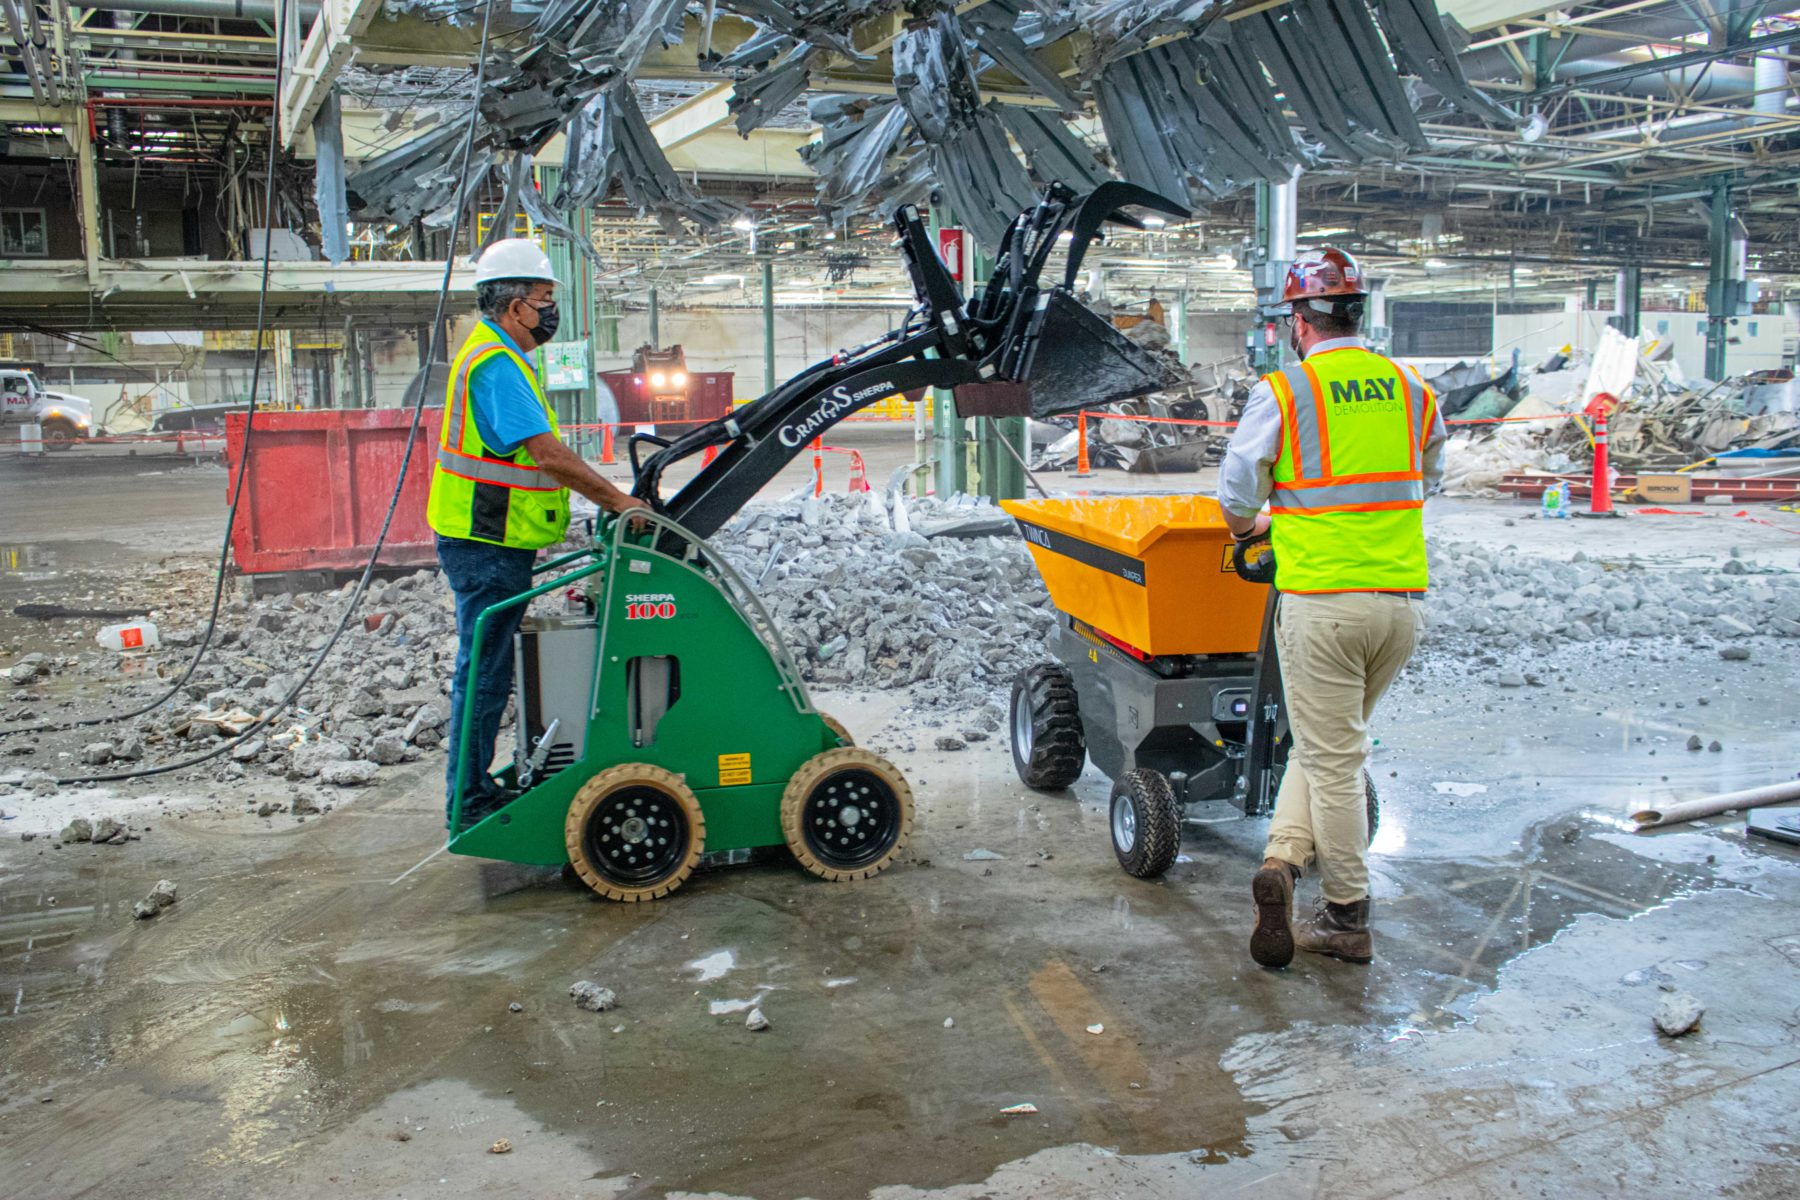 The Electric Skid Steer with Grapple Bucket